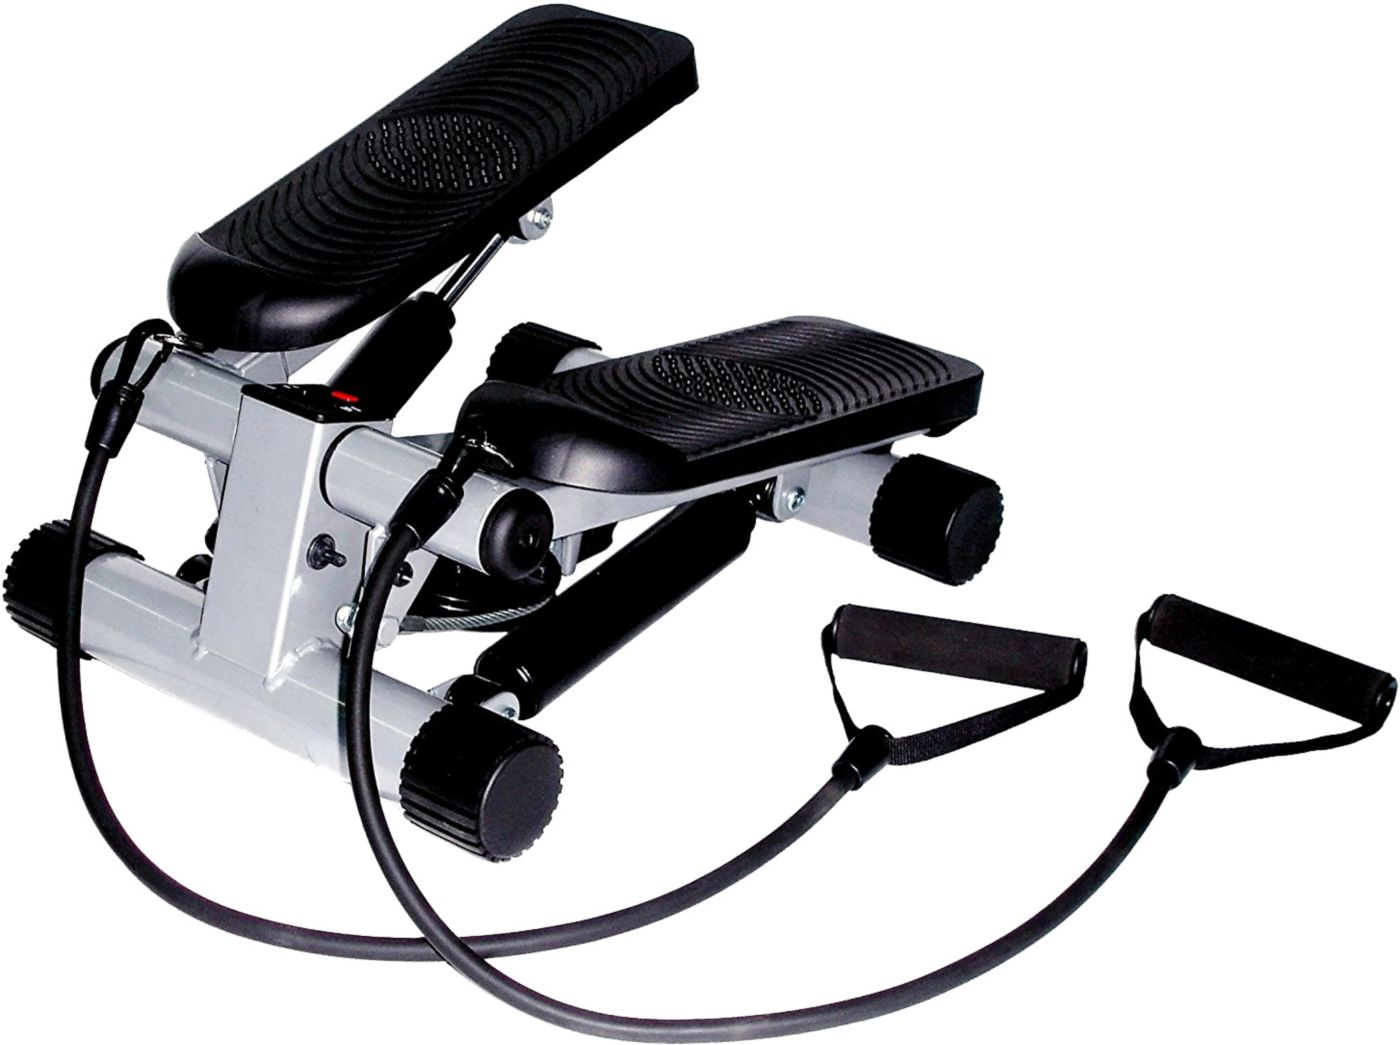 Sunny Health & Fitness NO. 012-S Mini Stepper With Resistance Bands